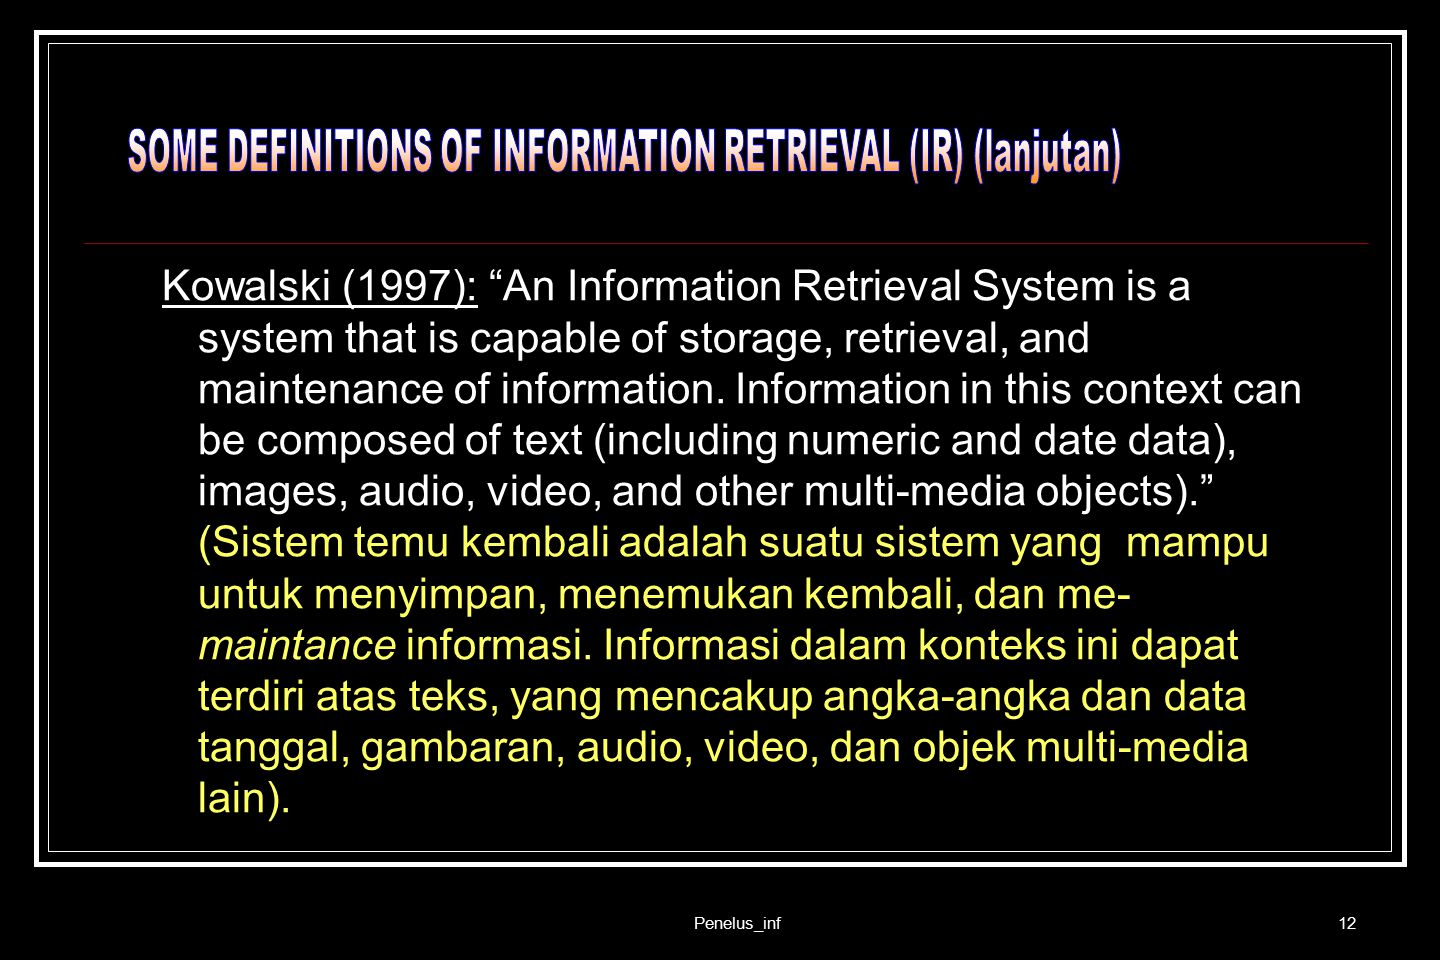 SOME DEFINITIONS OF INFORMATION RETRIEVAL (IR) (lanjutan)